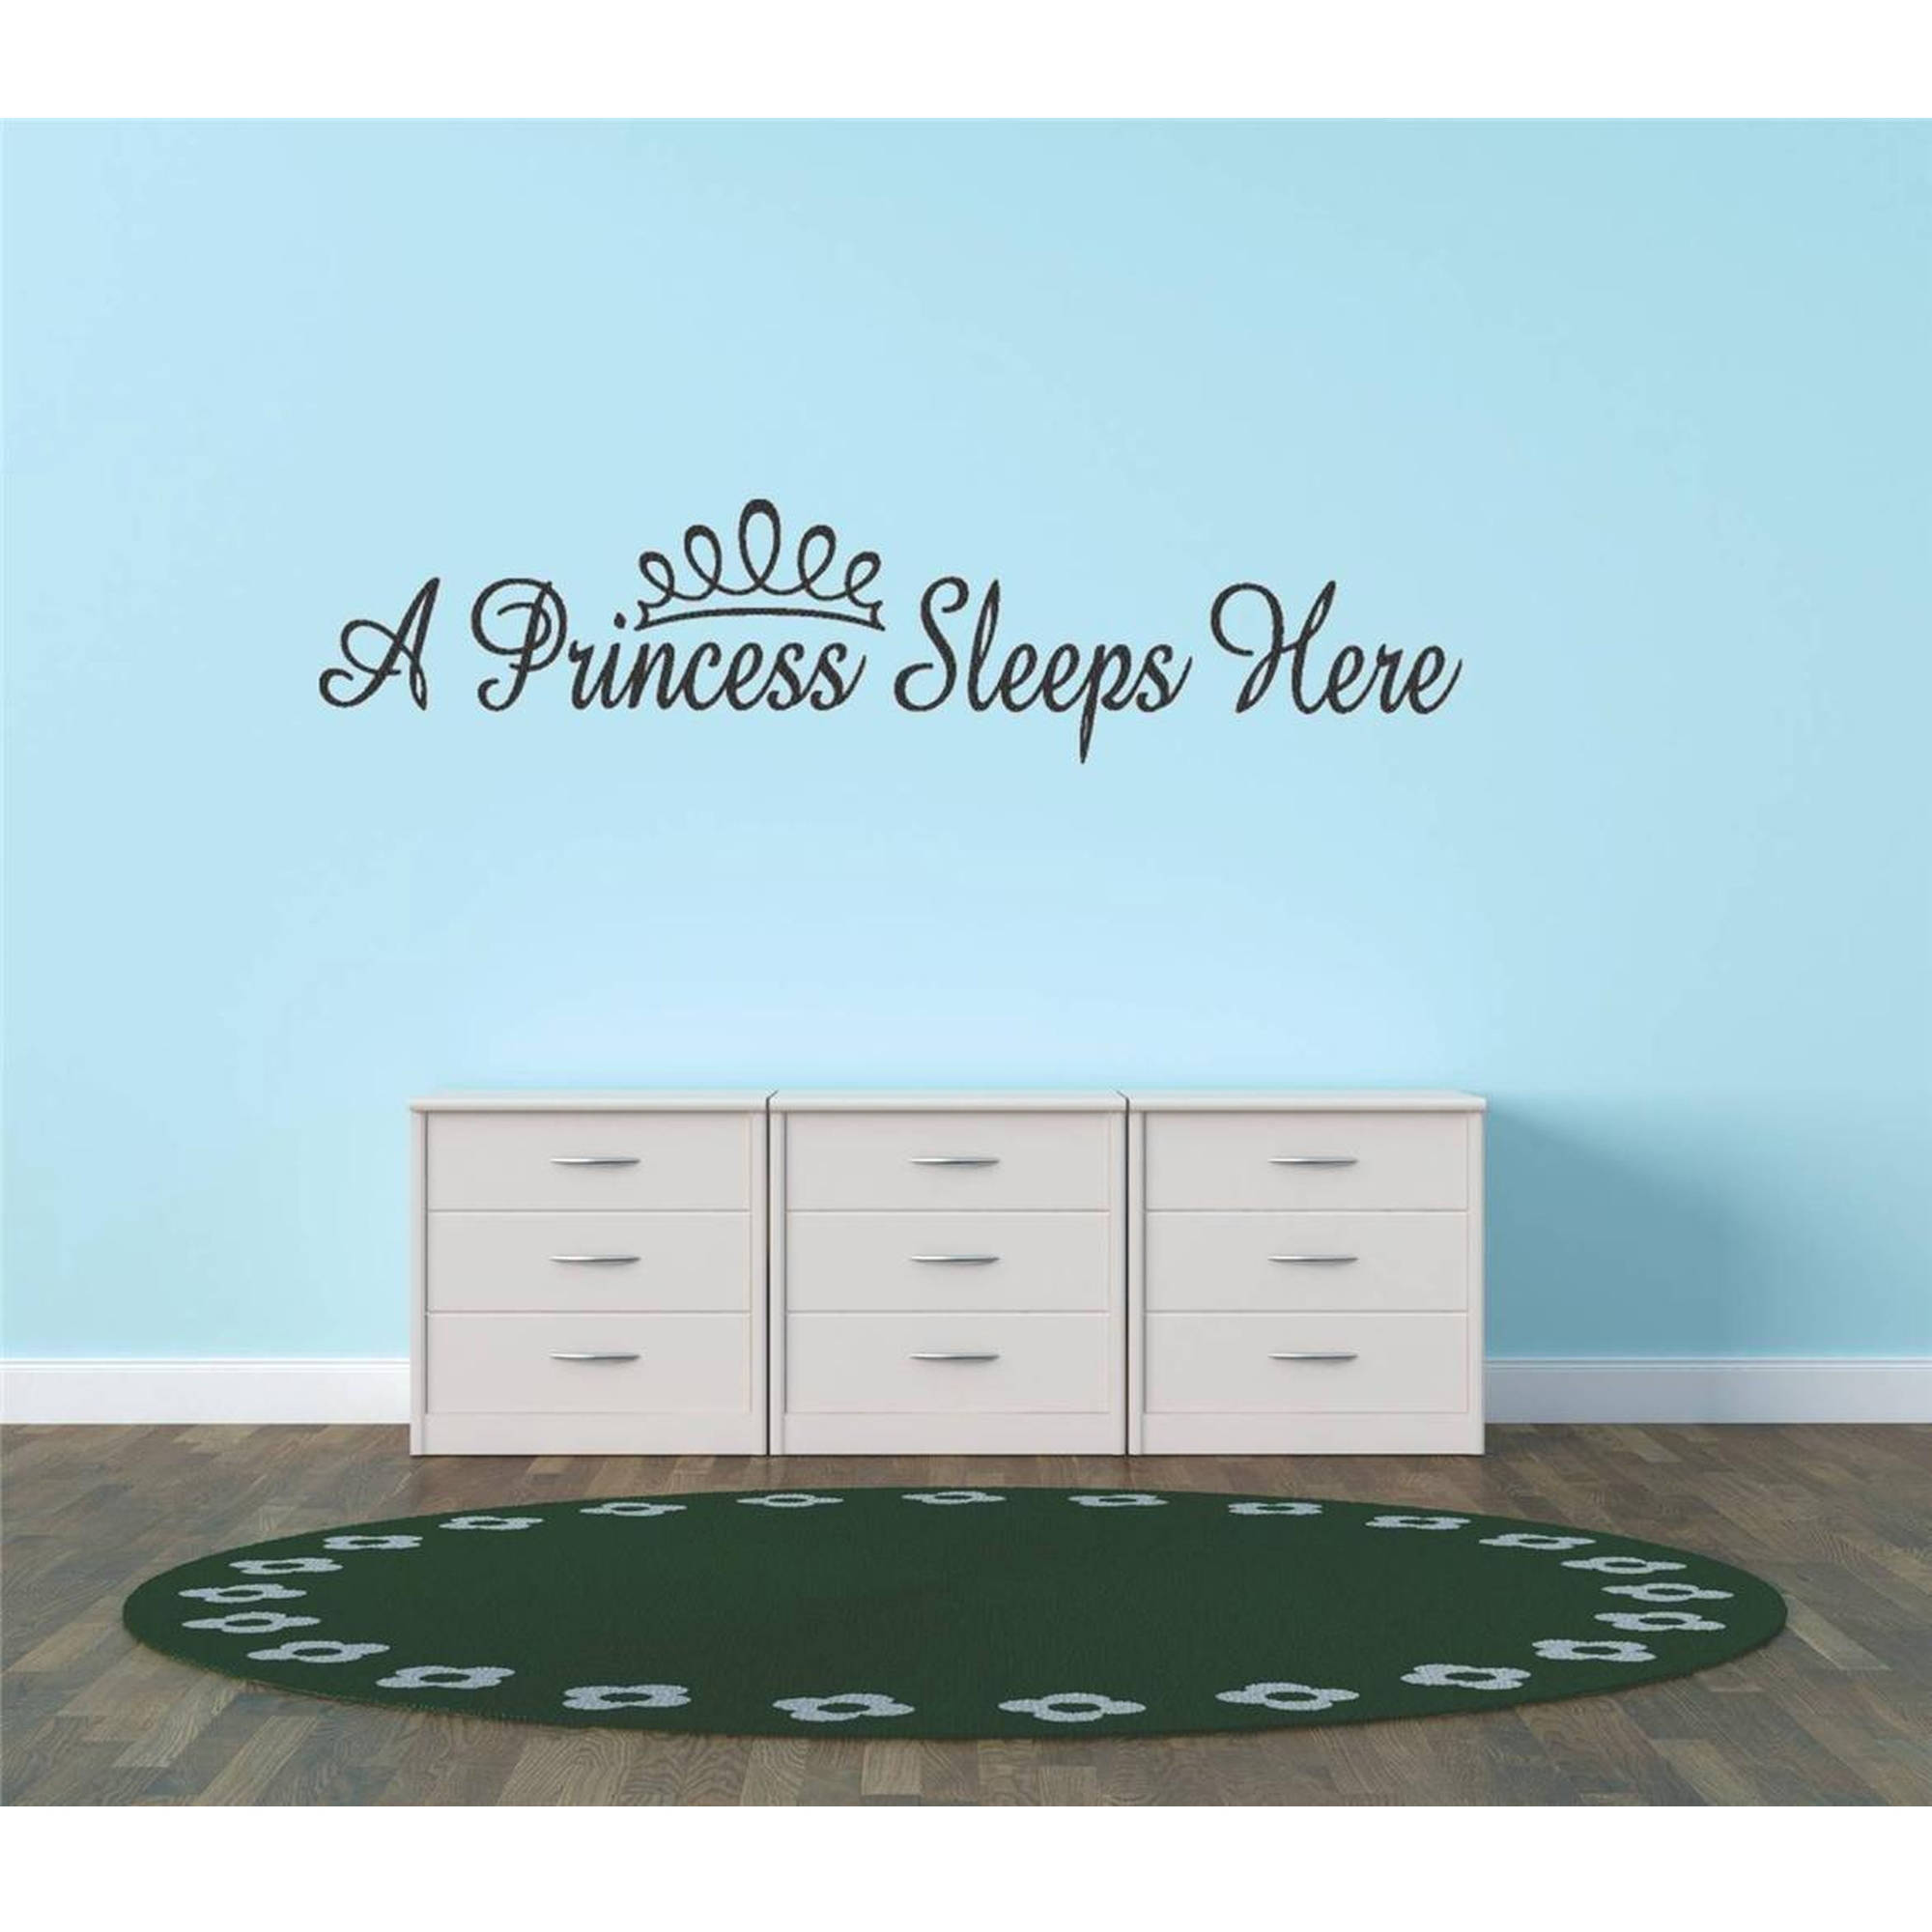 "A Princess Sleeps Here Girl Bedroom Vinyl Wall Decal, 6"" x 30"", Black"